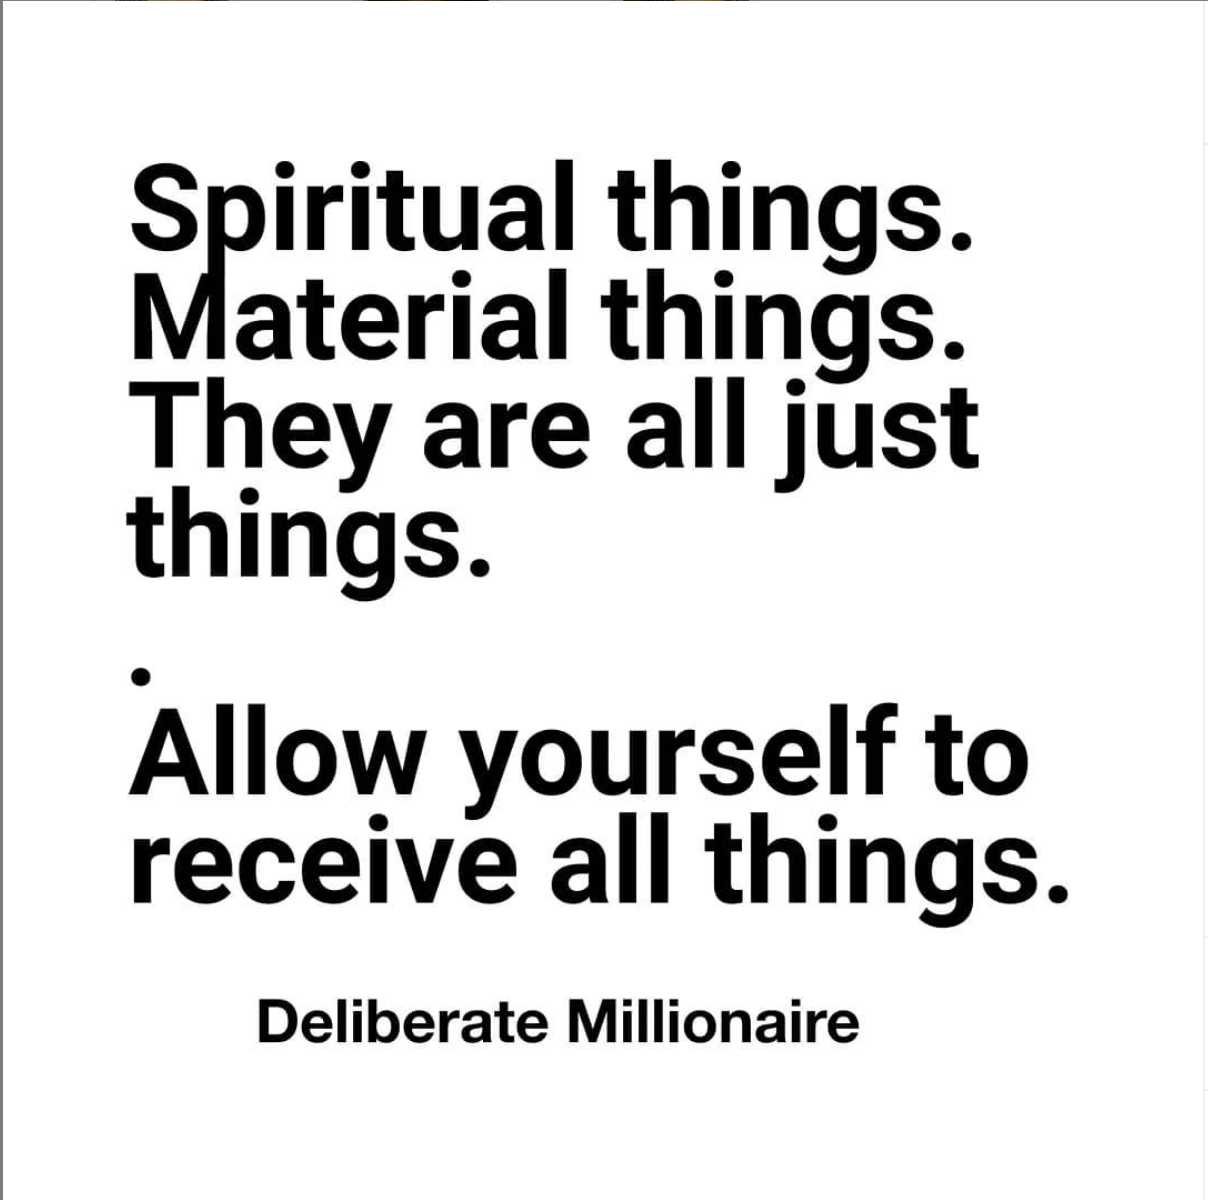 Allow Yourself to receive all the things